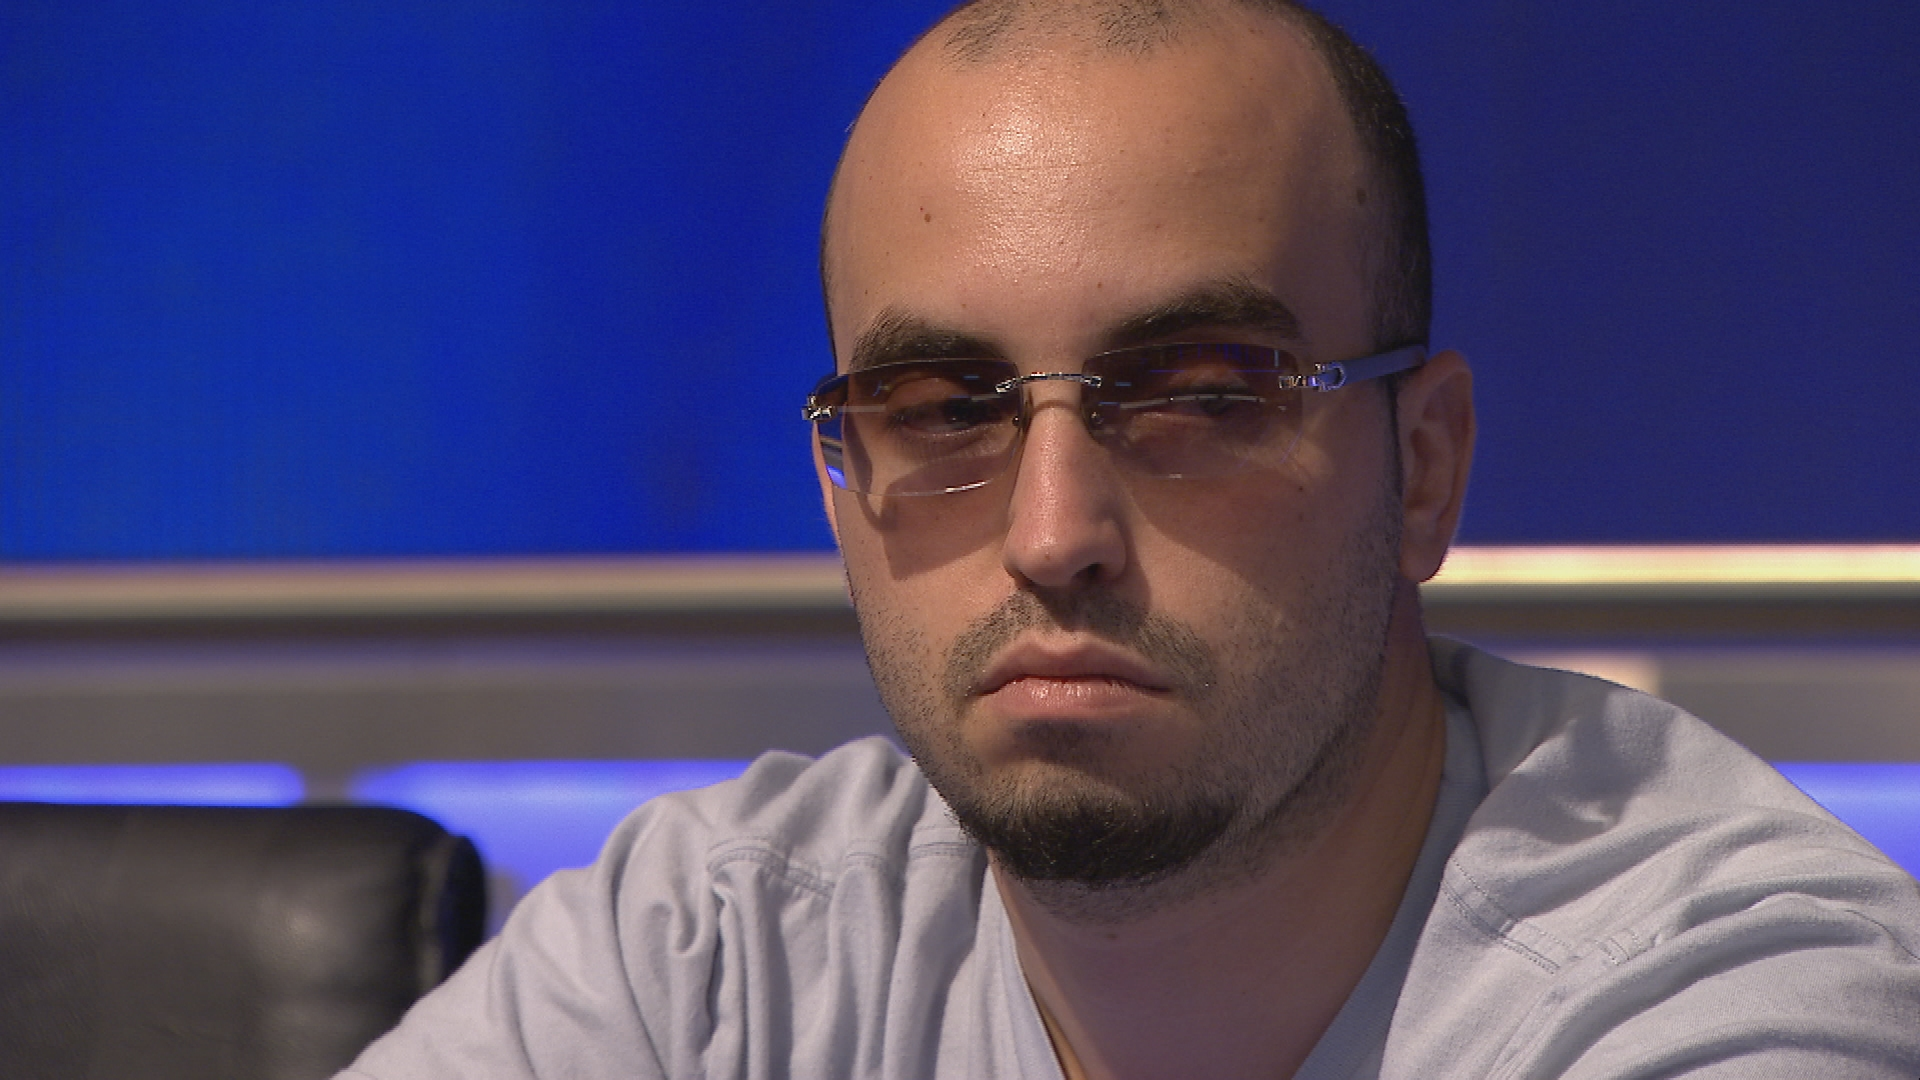 New rule for EPT: 20% of players make money!